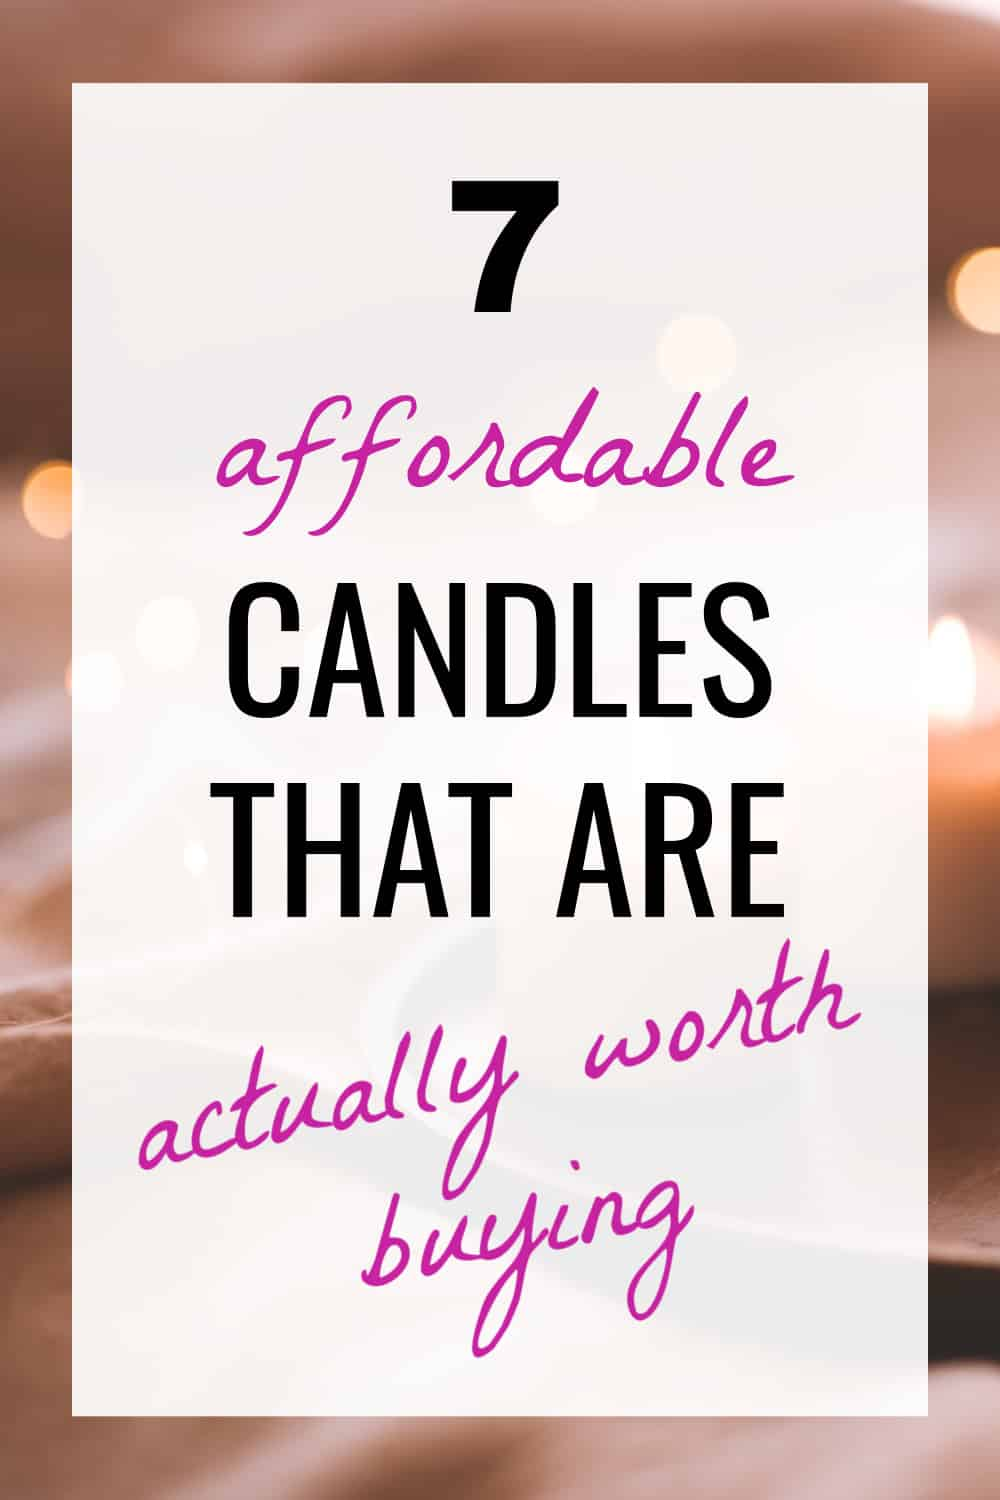 What are the best candles for the money?